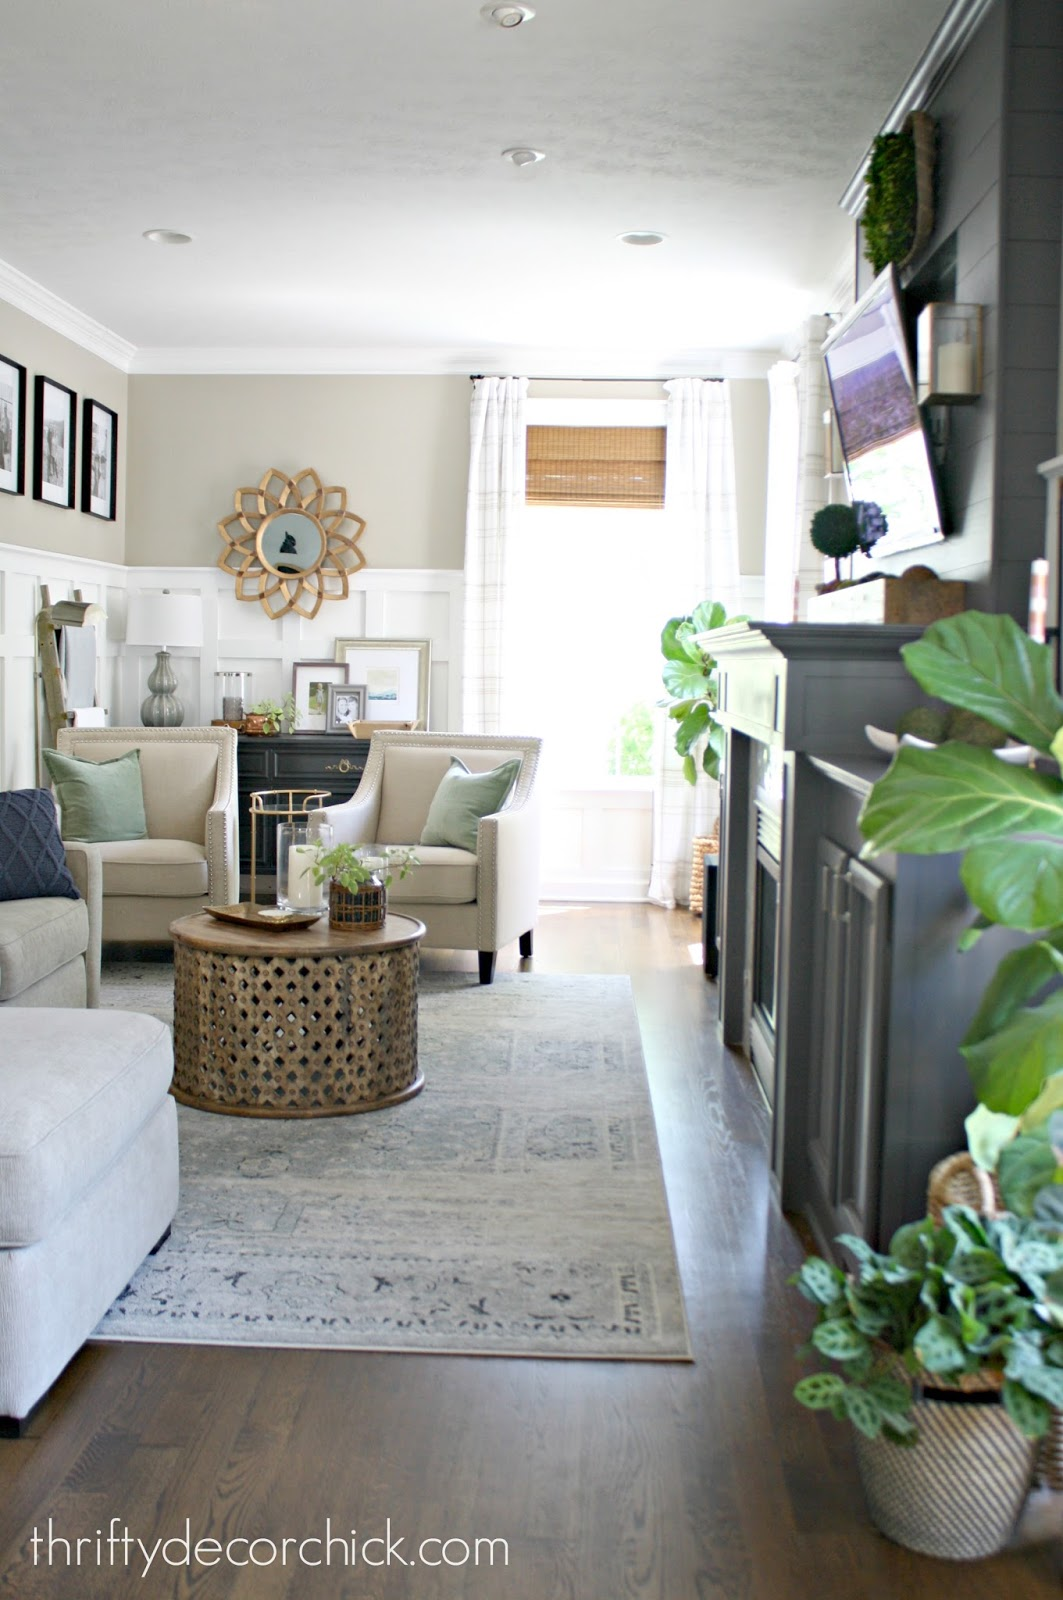 Mini family room makeover complete! from Thrifty Decor Chick